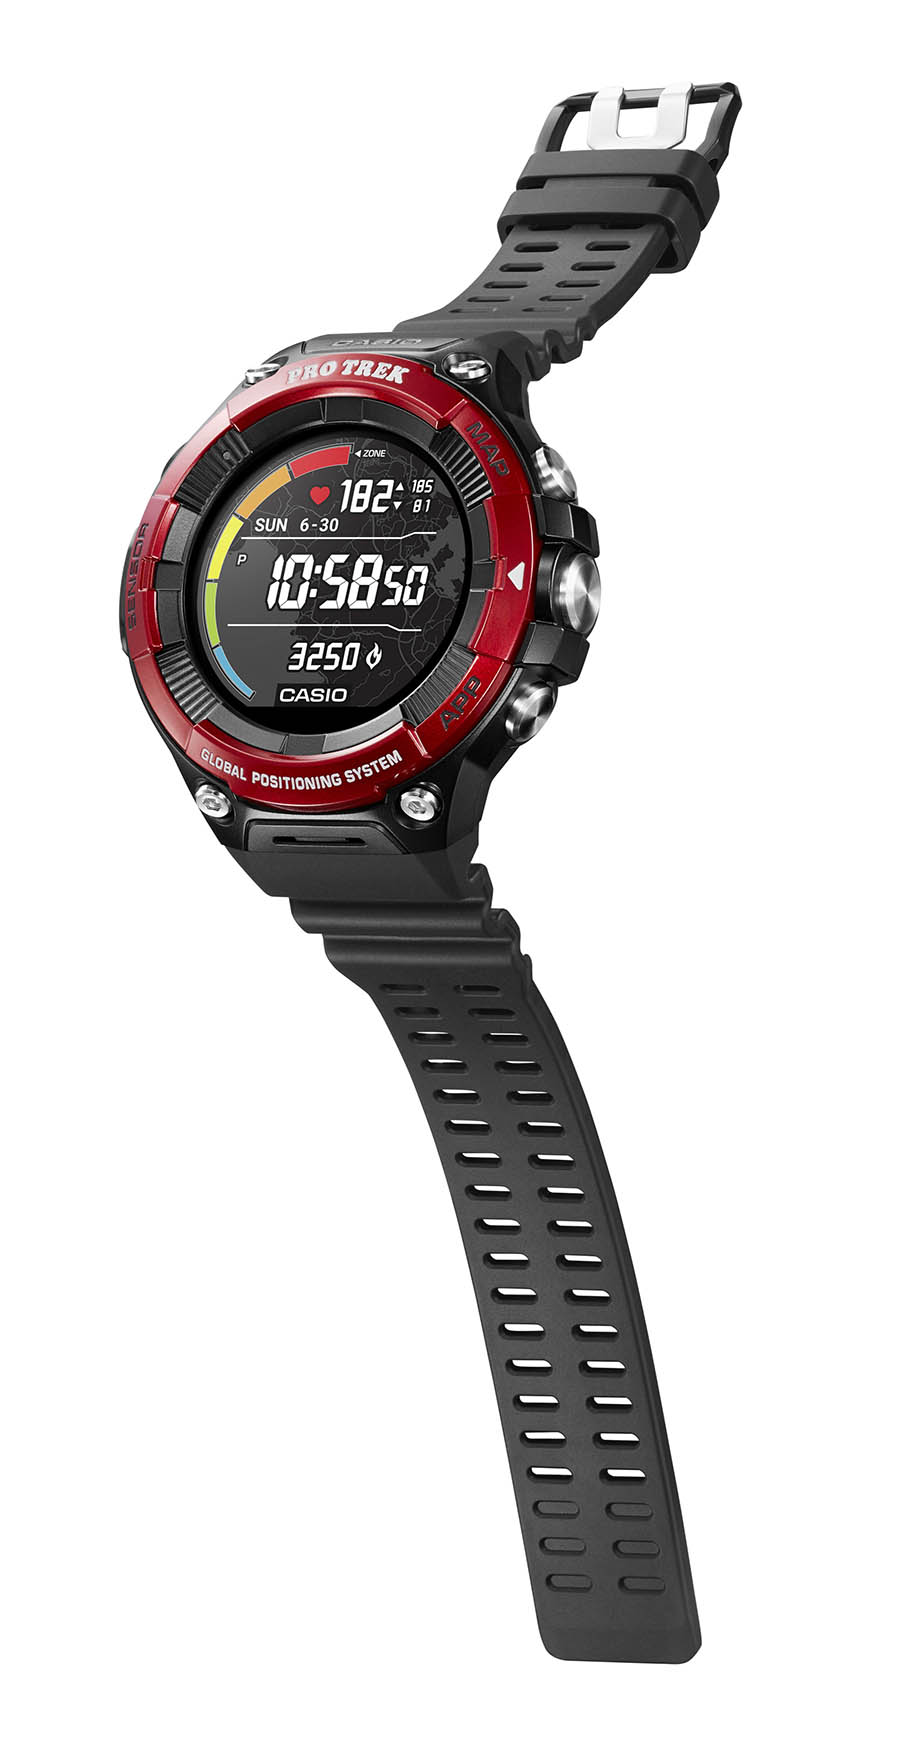 CASIO Smartwatch PRO TREK WSD-F21HR